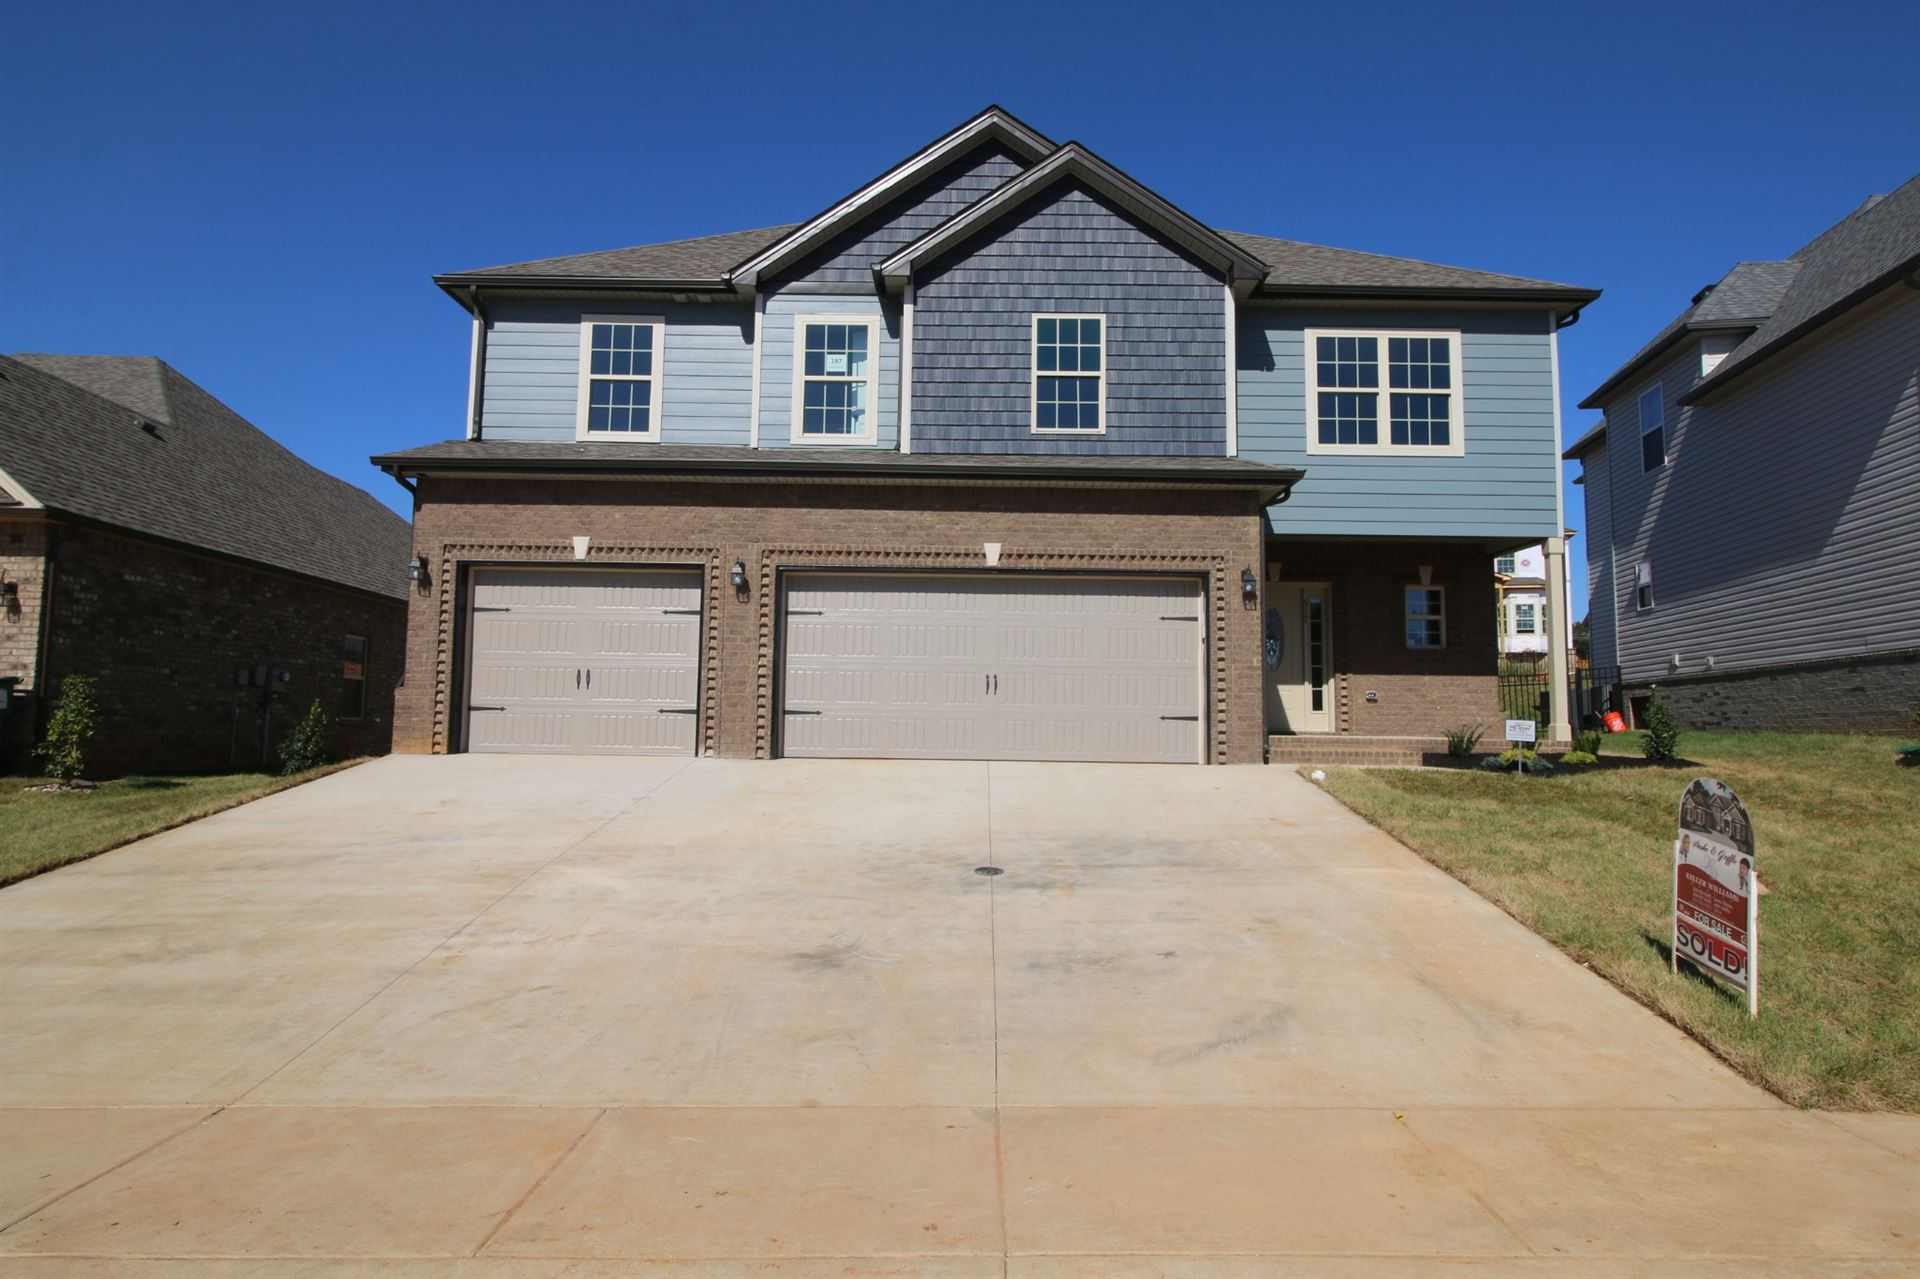 187 Charleston Oaks Reserves, Clarksville, TN 37042 - MLS#: 2235418